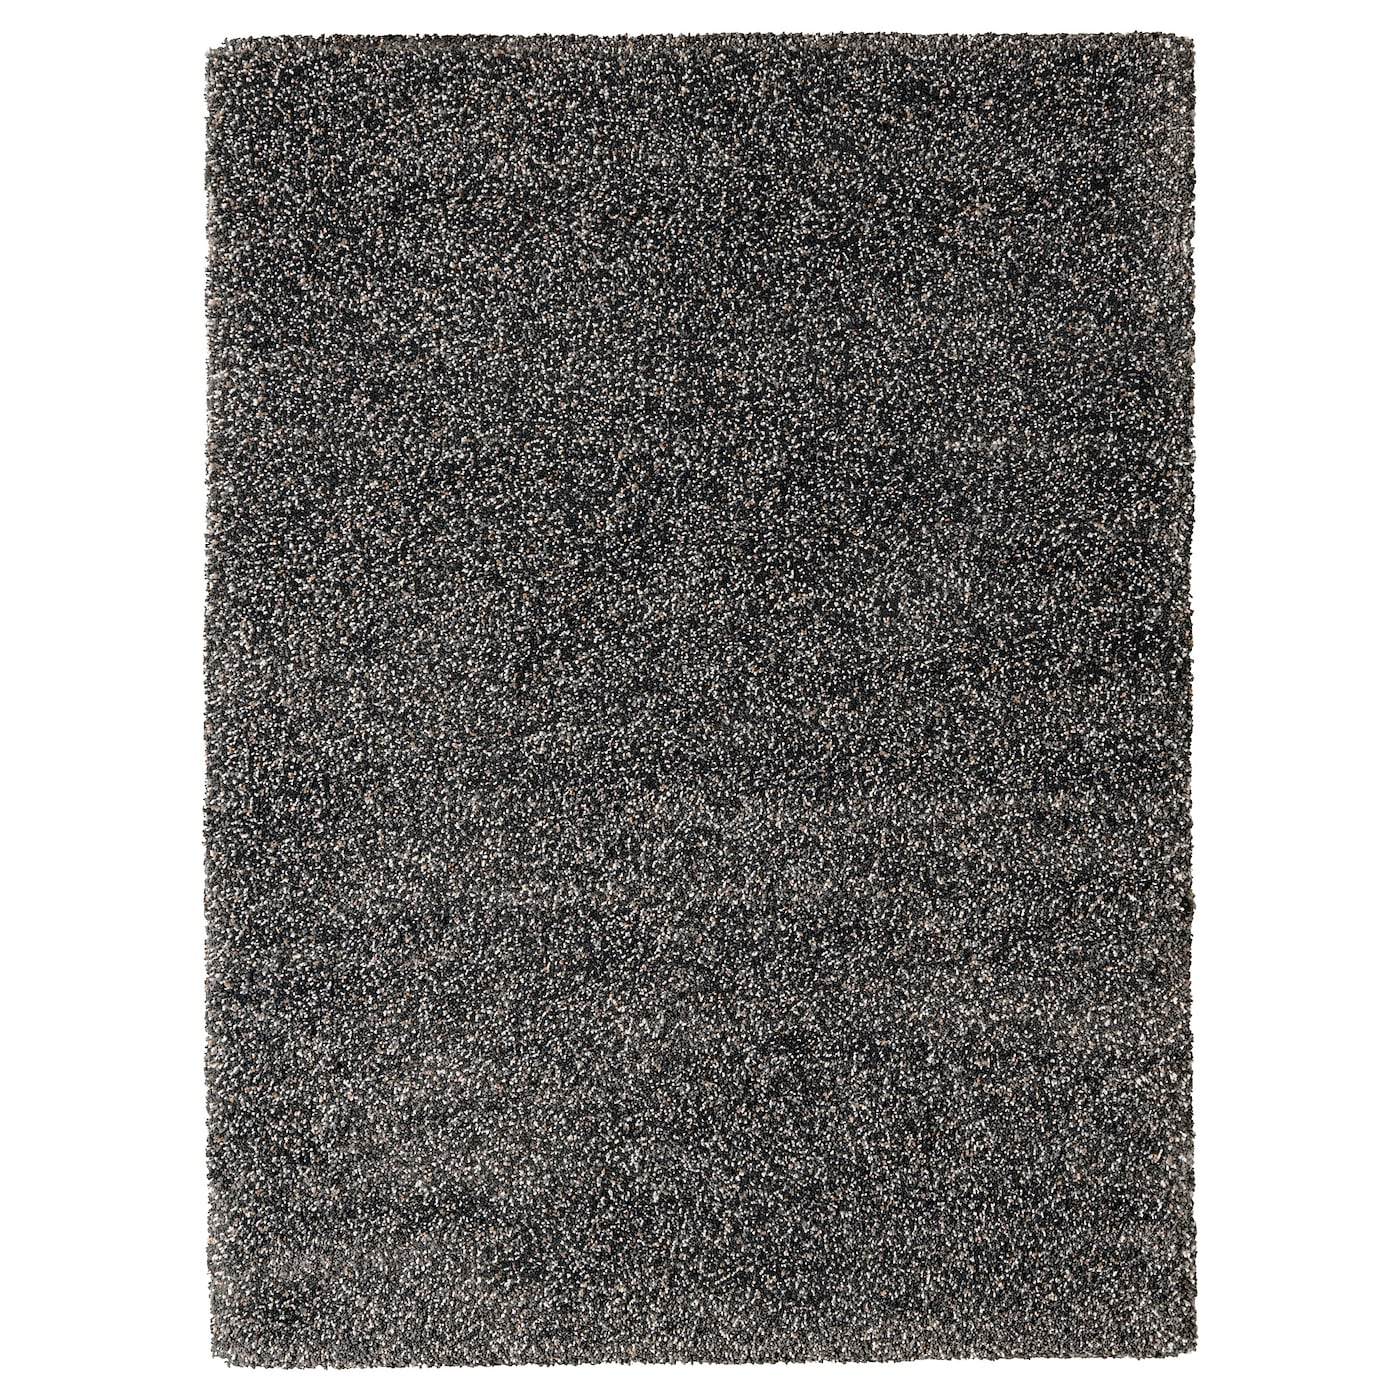 Rug High Pile Vindum Dark Grey